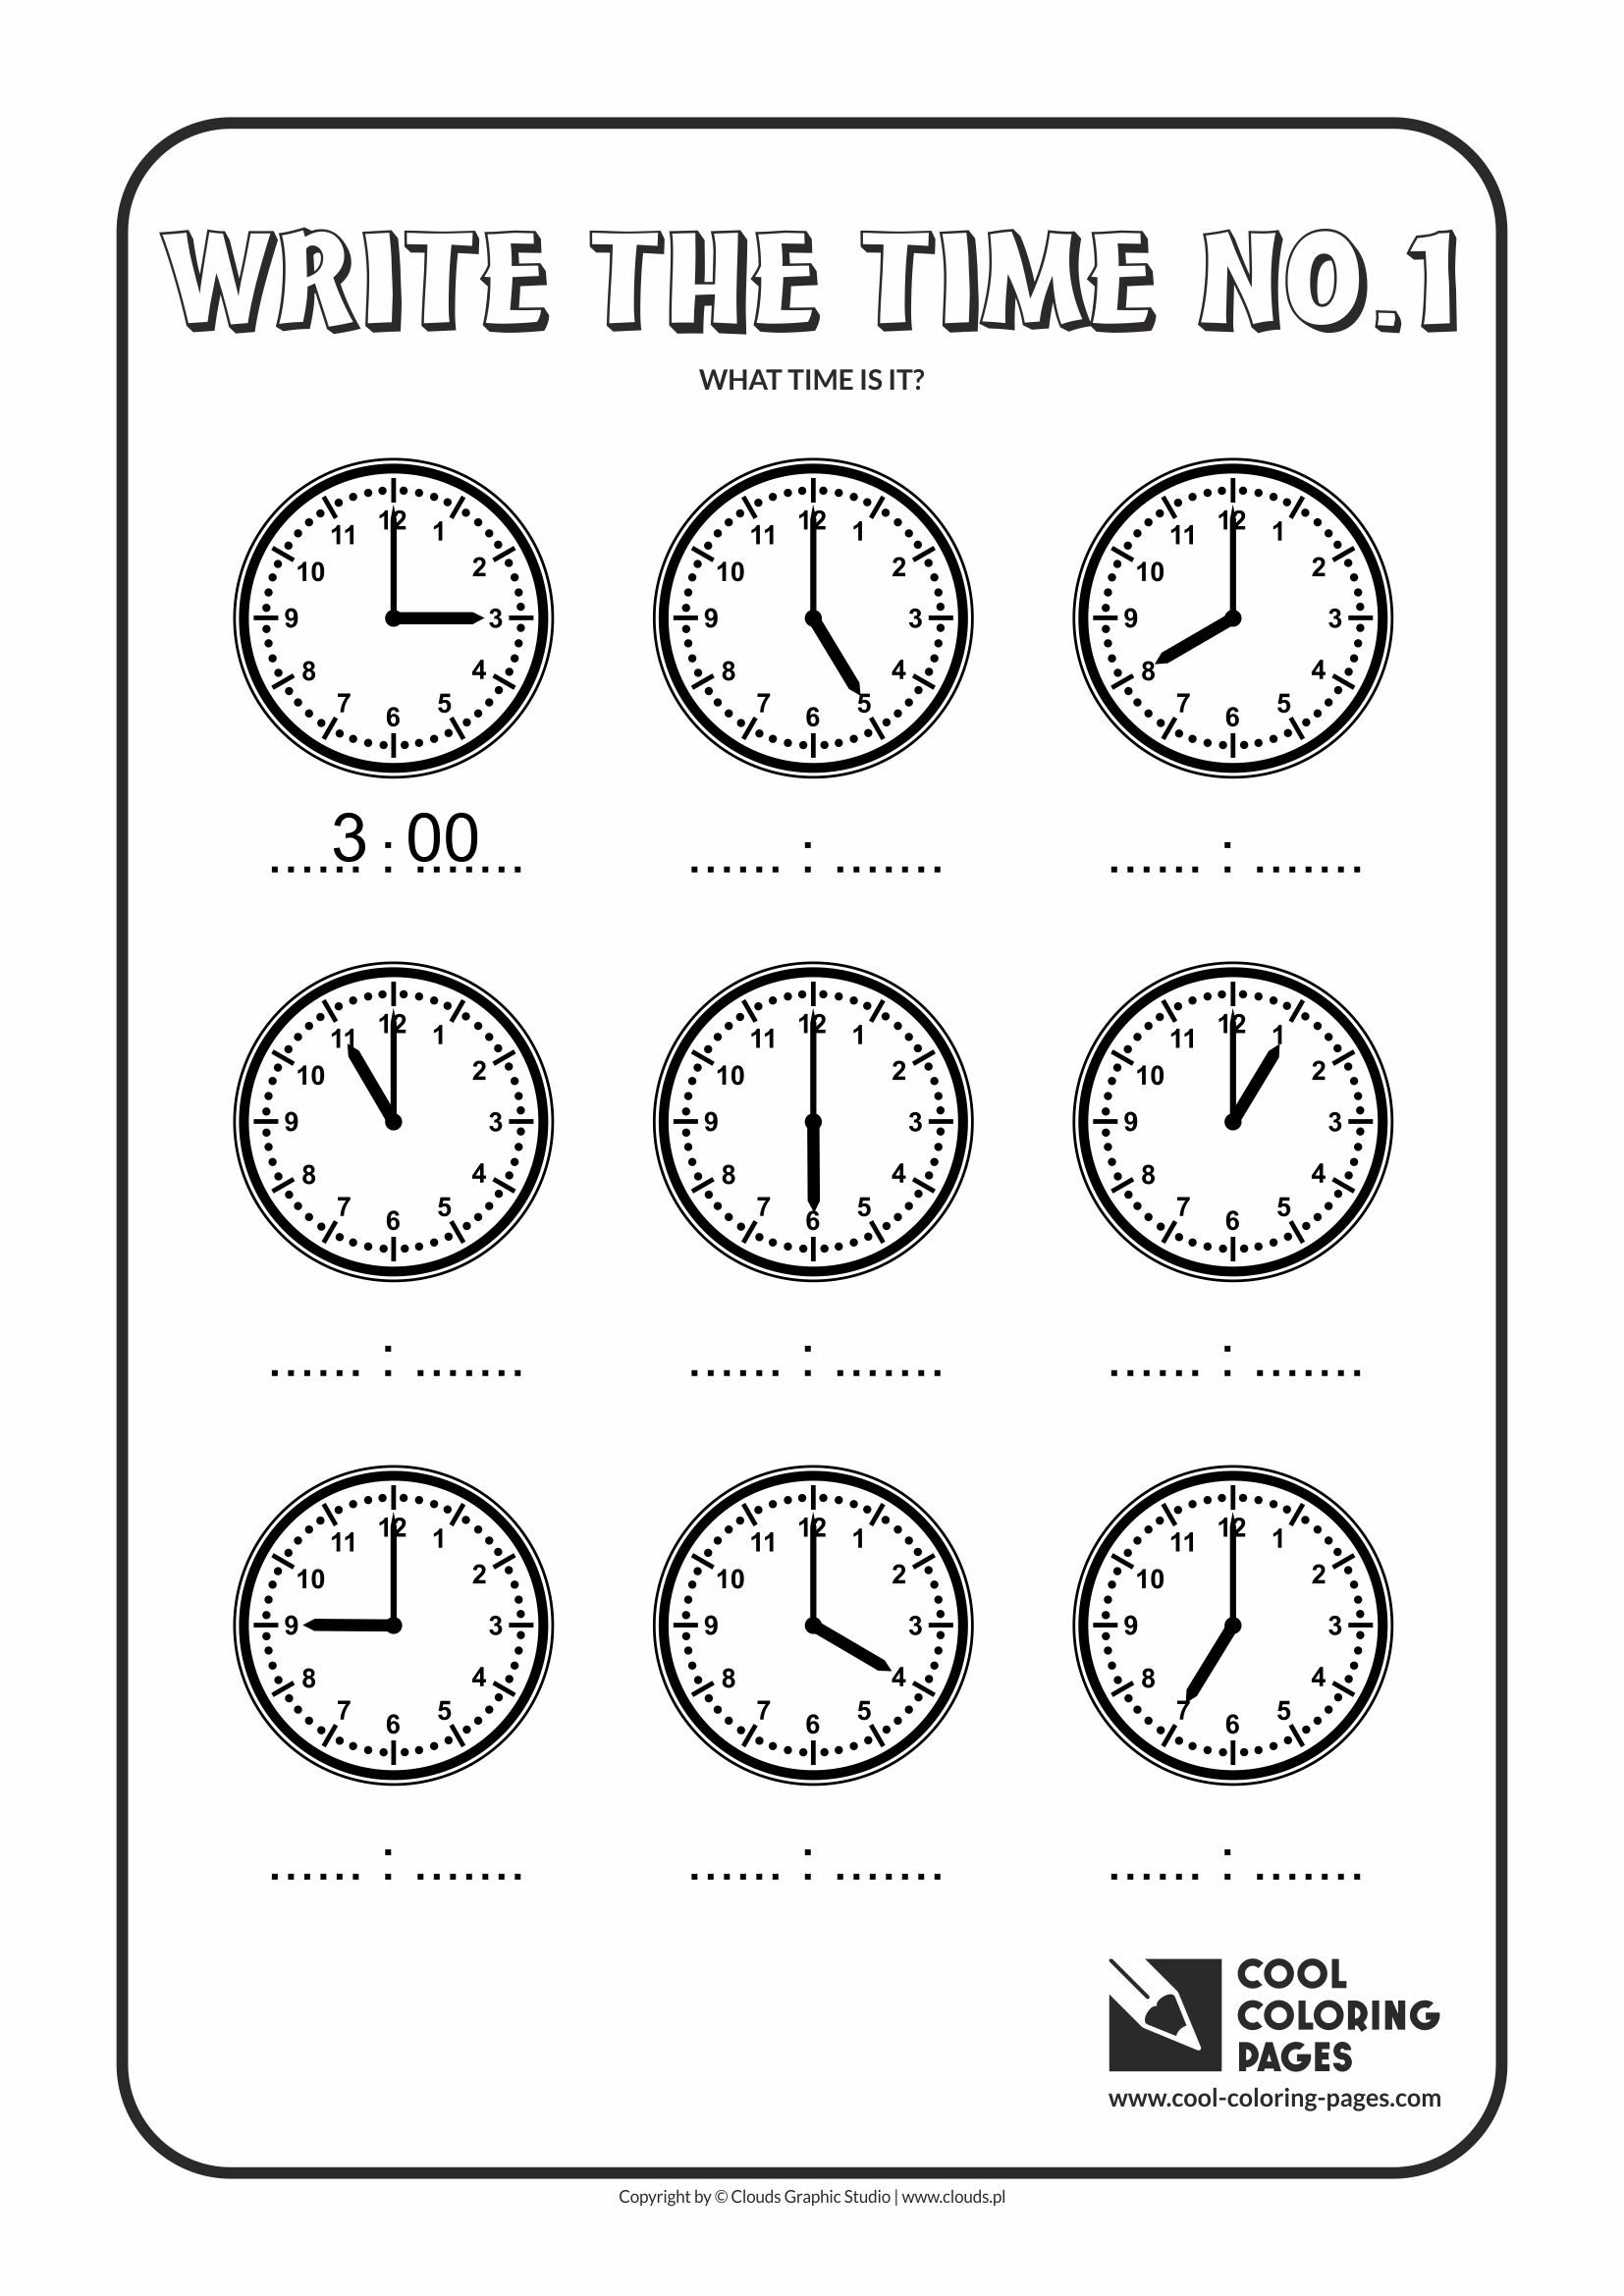 Cool Coloring Pages - Time / Write the time no.1